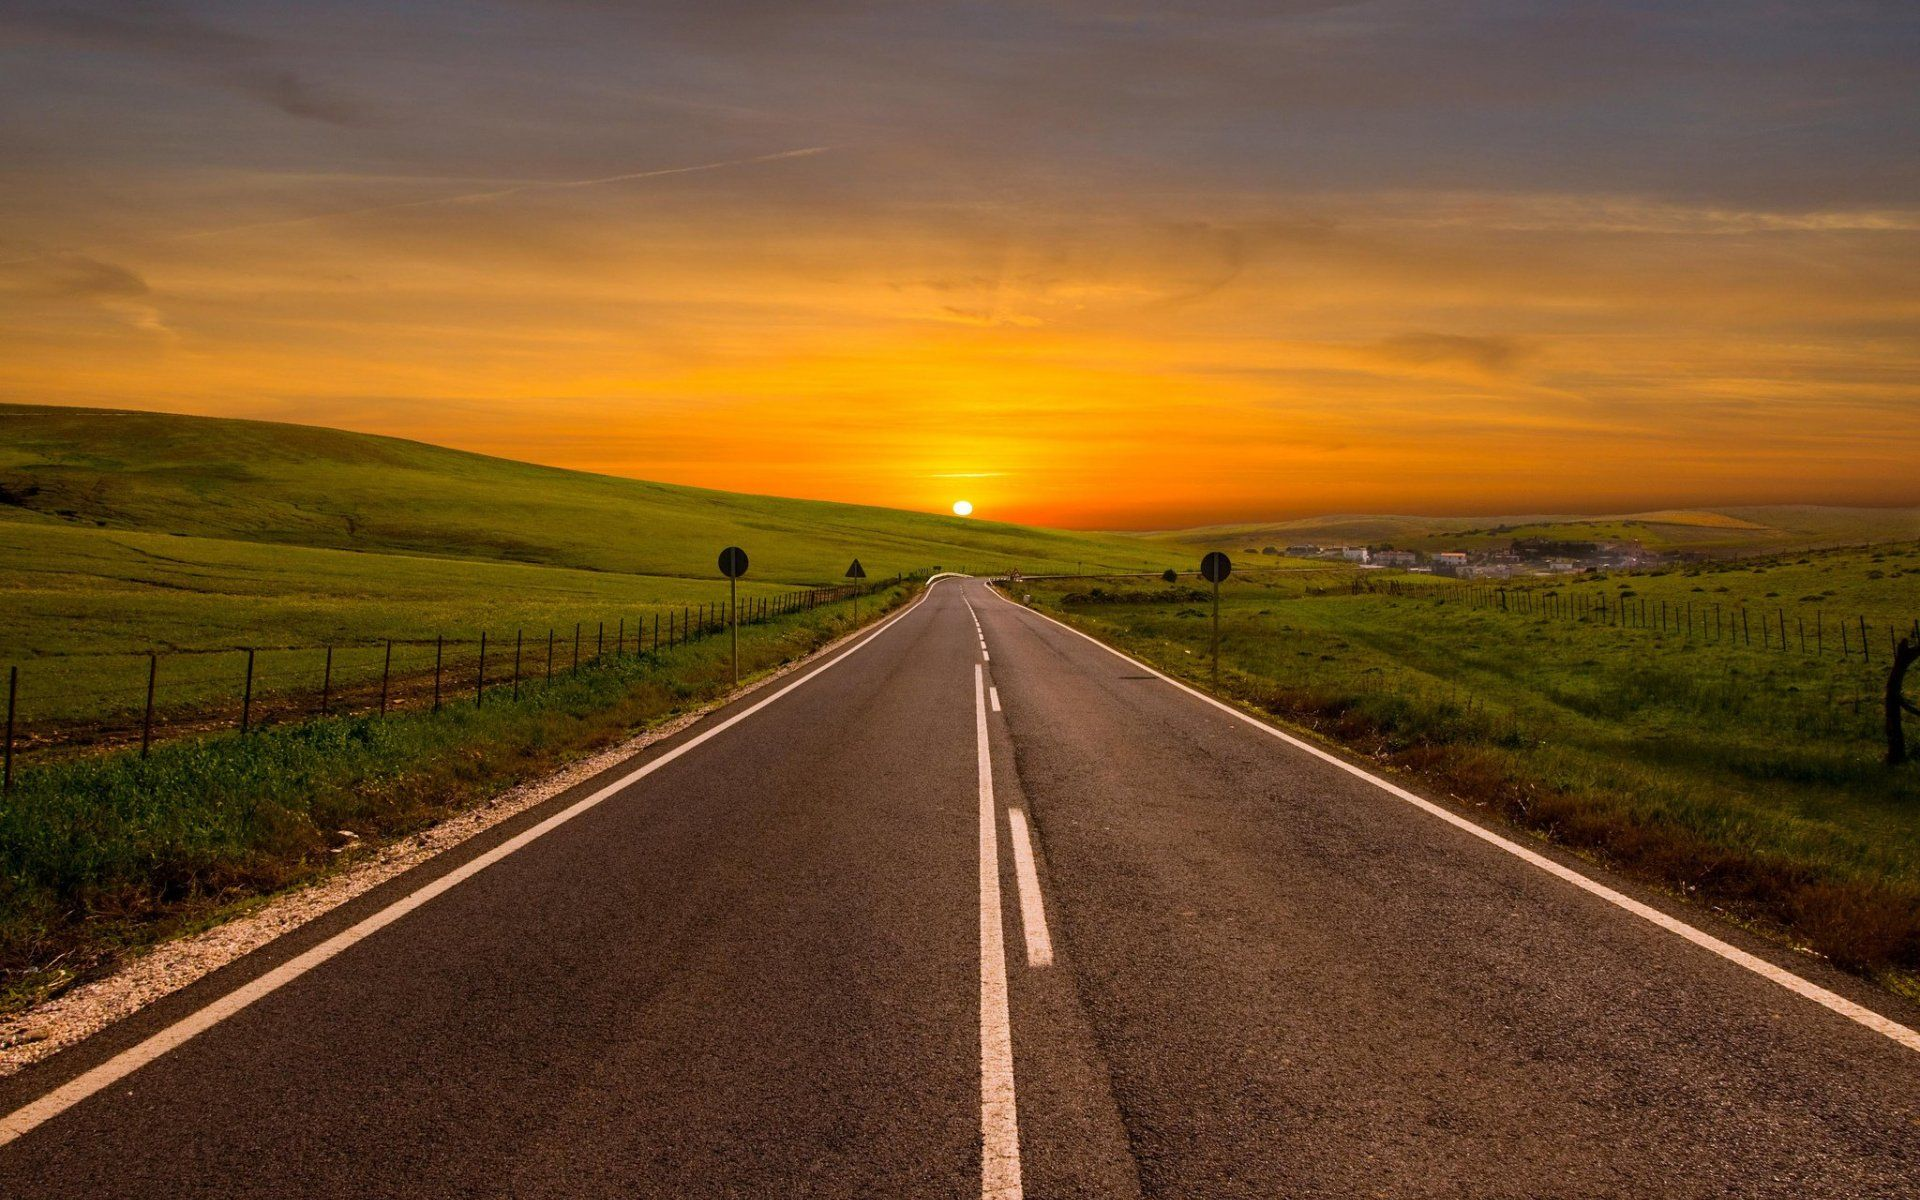 Sunset Road Wallpapers Top Free Sunset Road Backgrounds Wallpaperaccess